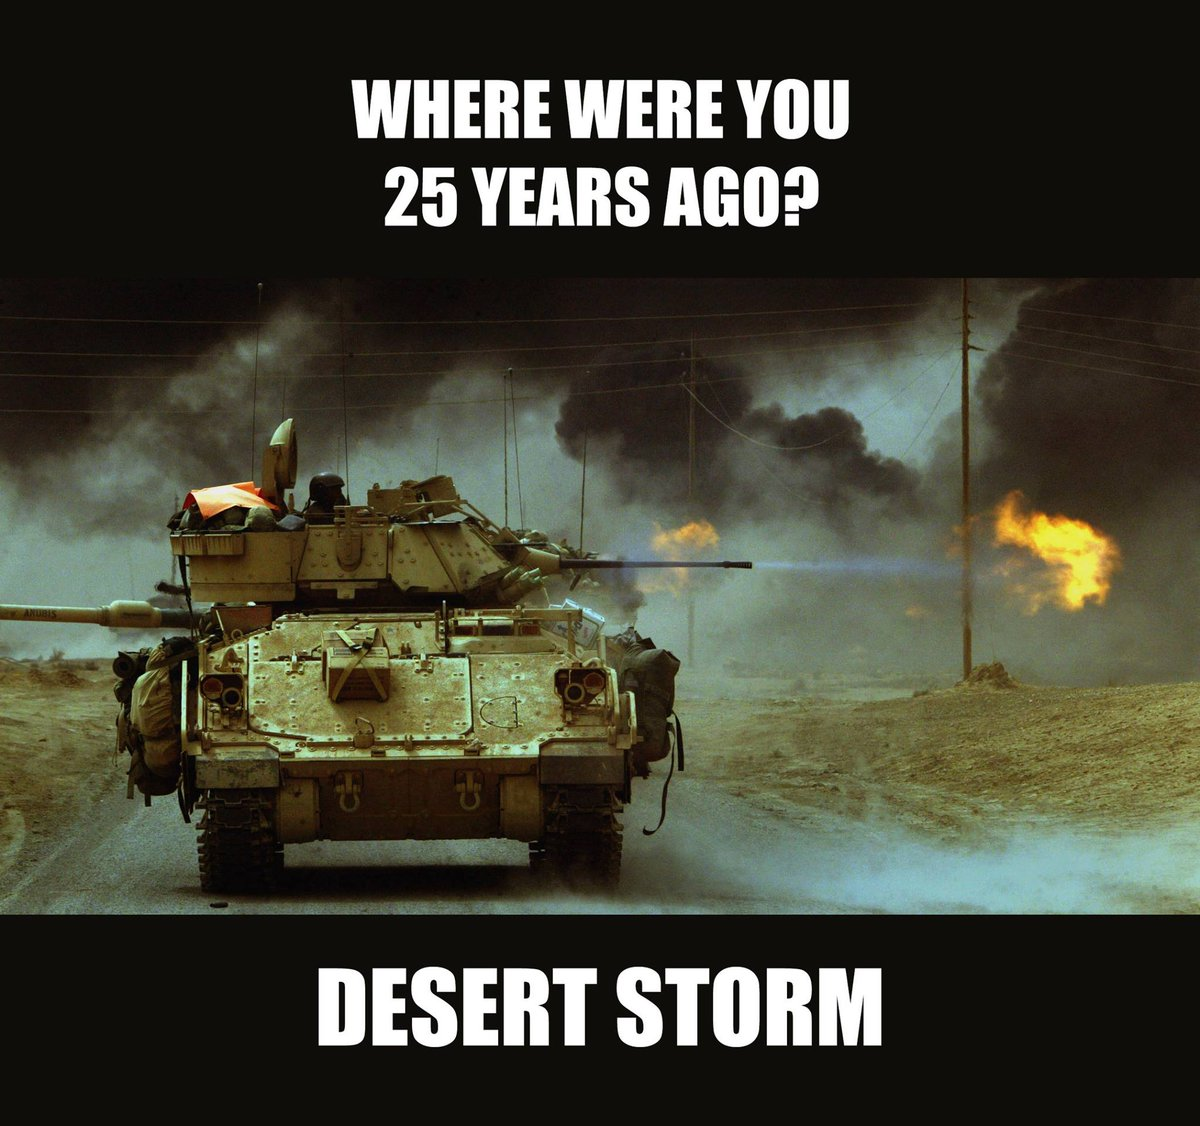 Where were you? #DesertStorm #ROTM #GulfWar #25thAnniversery #DesertShield #3ID @USArmy https://t.co/KOwT80P7GY